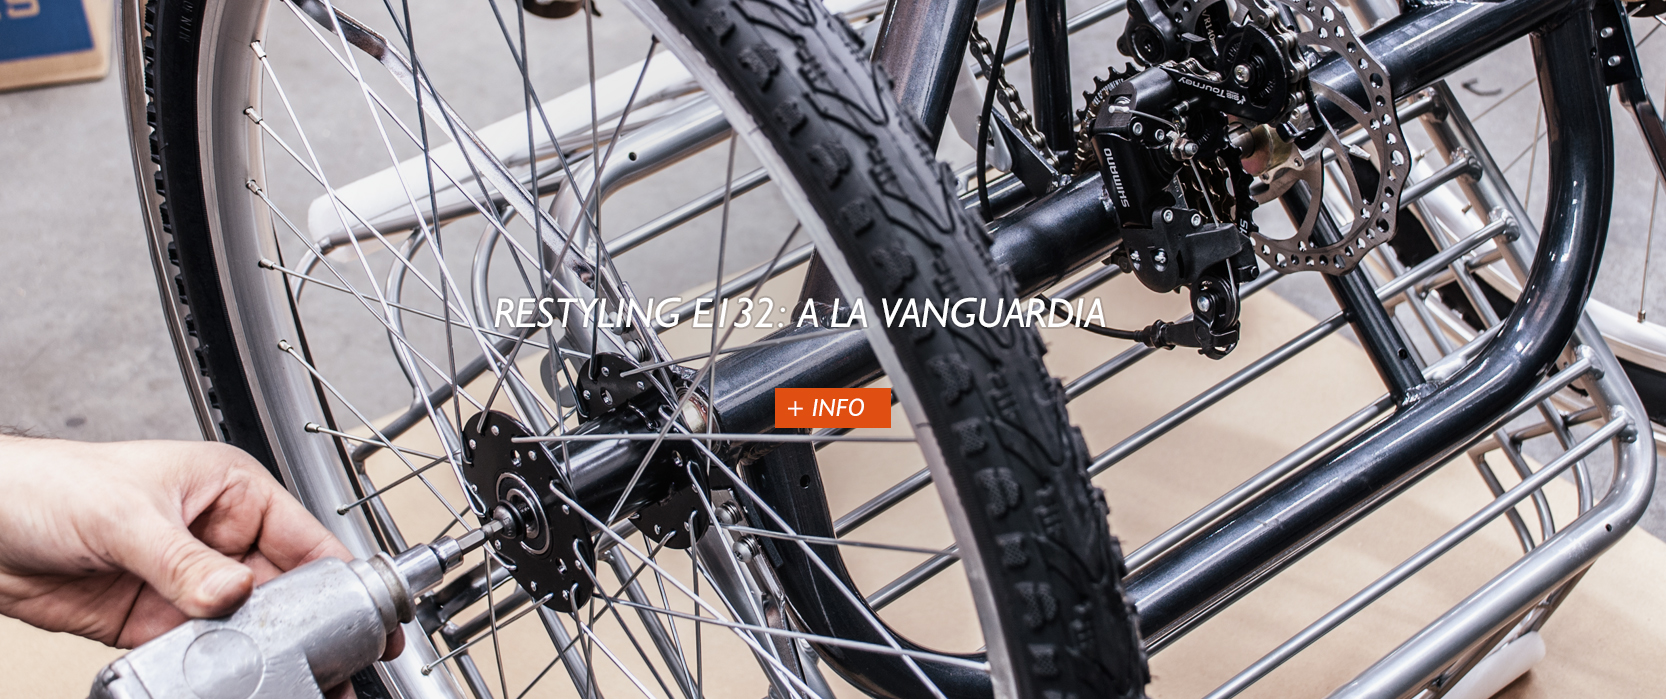 slide-triciclo-e132-restyling1